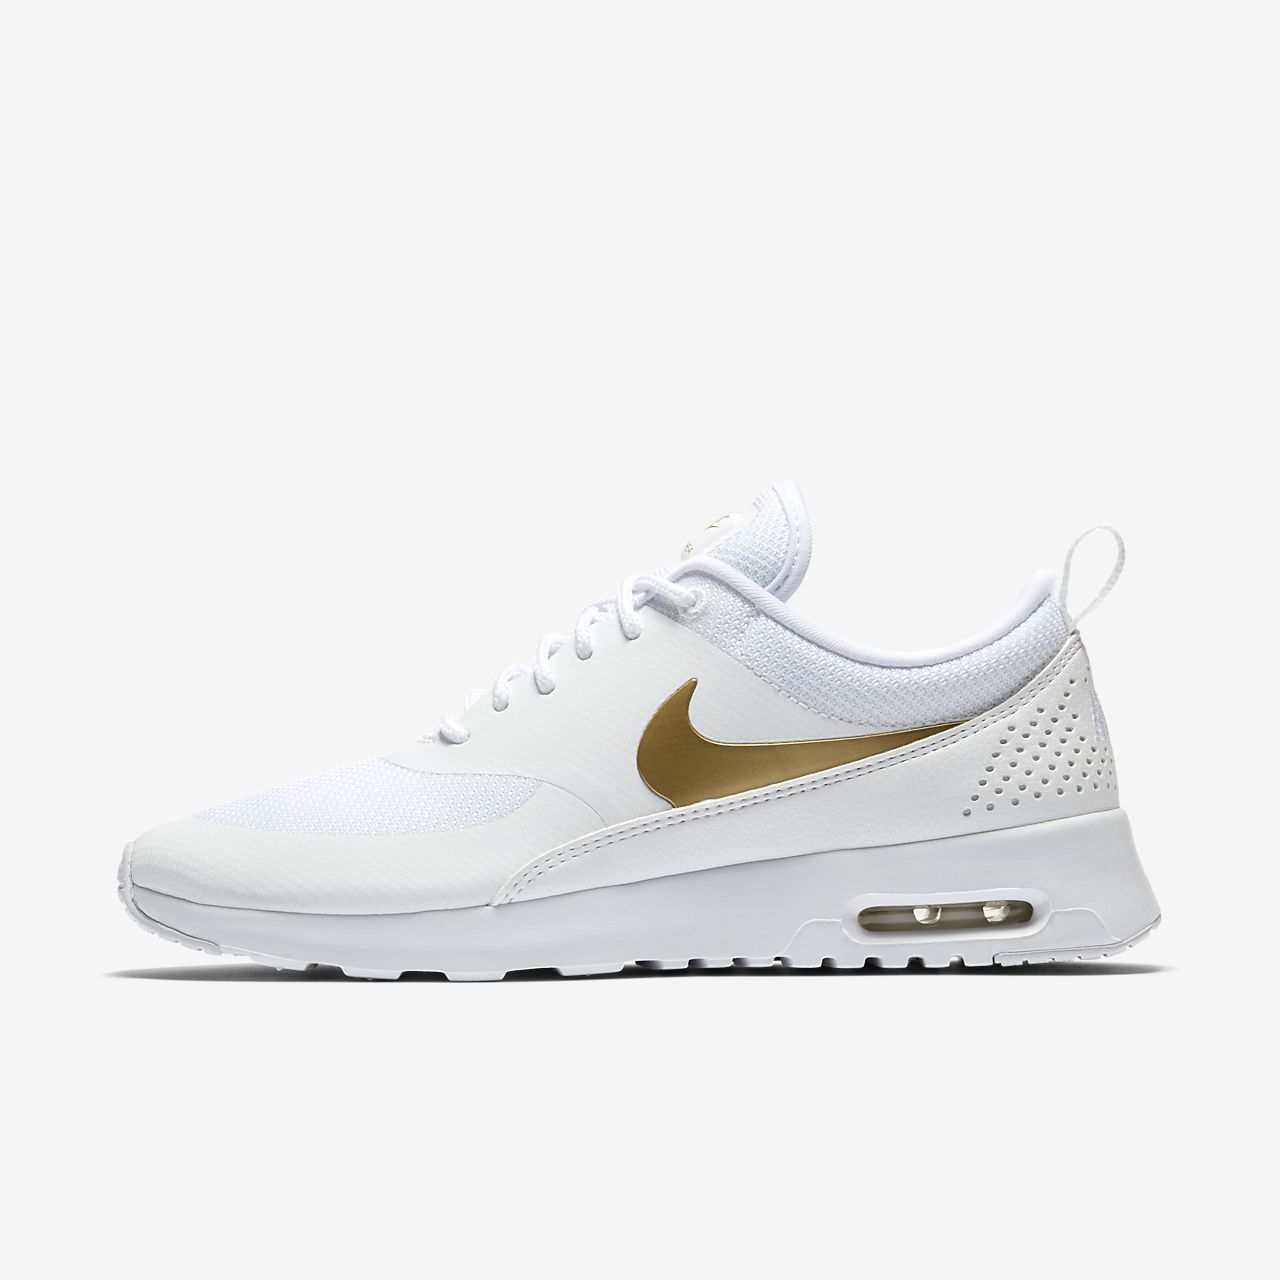 Best Xmas Gifts Nike Air Max Classic BW Mens Outlet Sale216